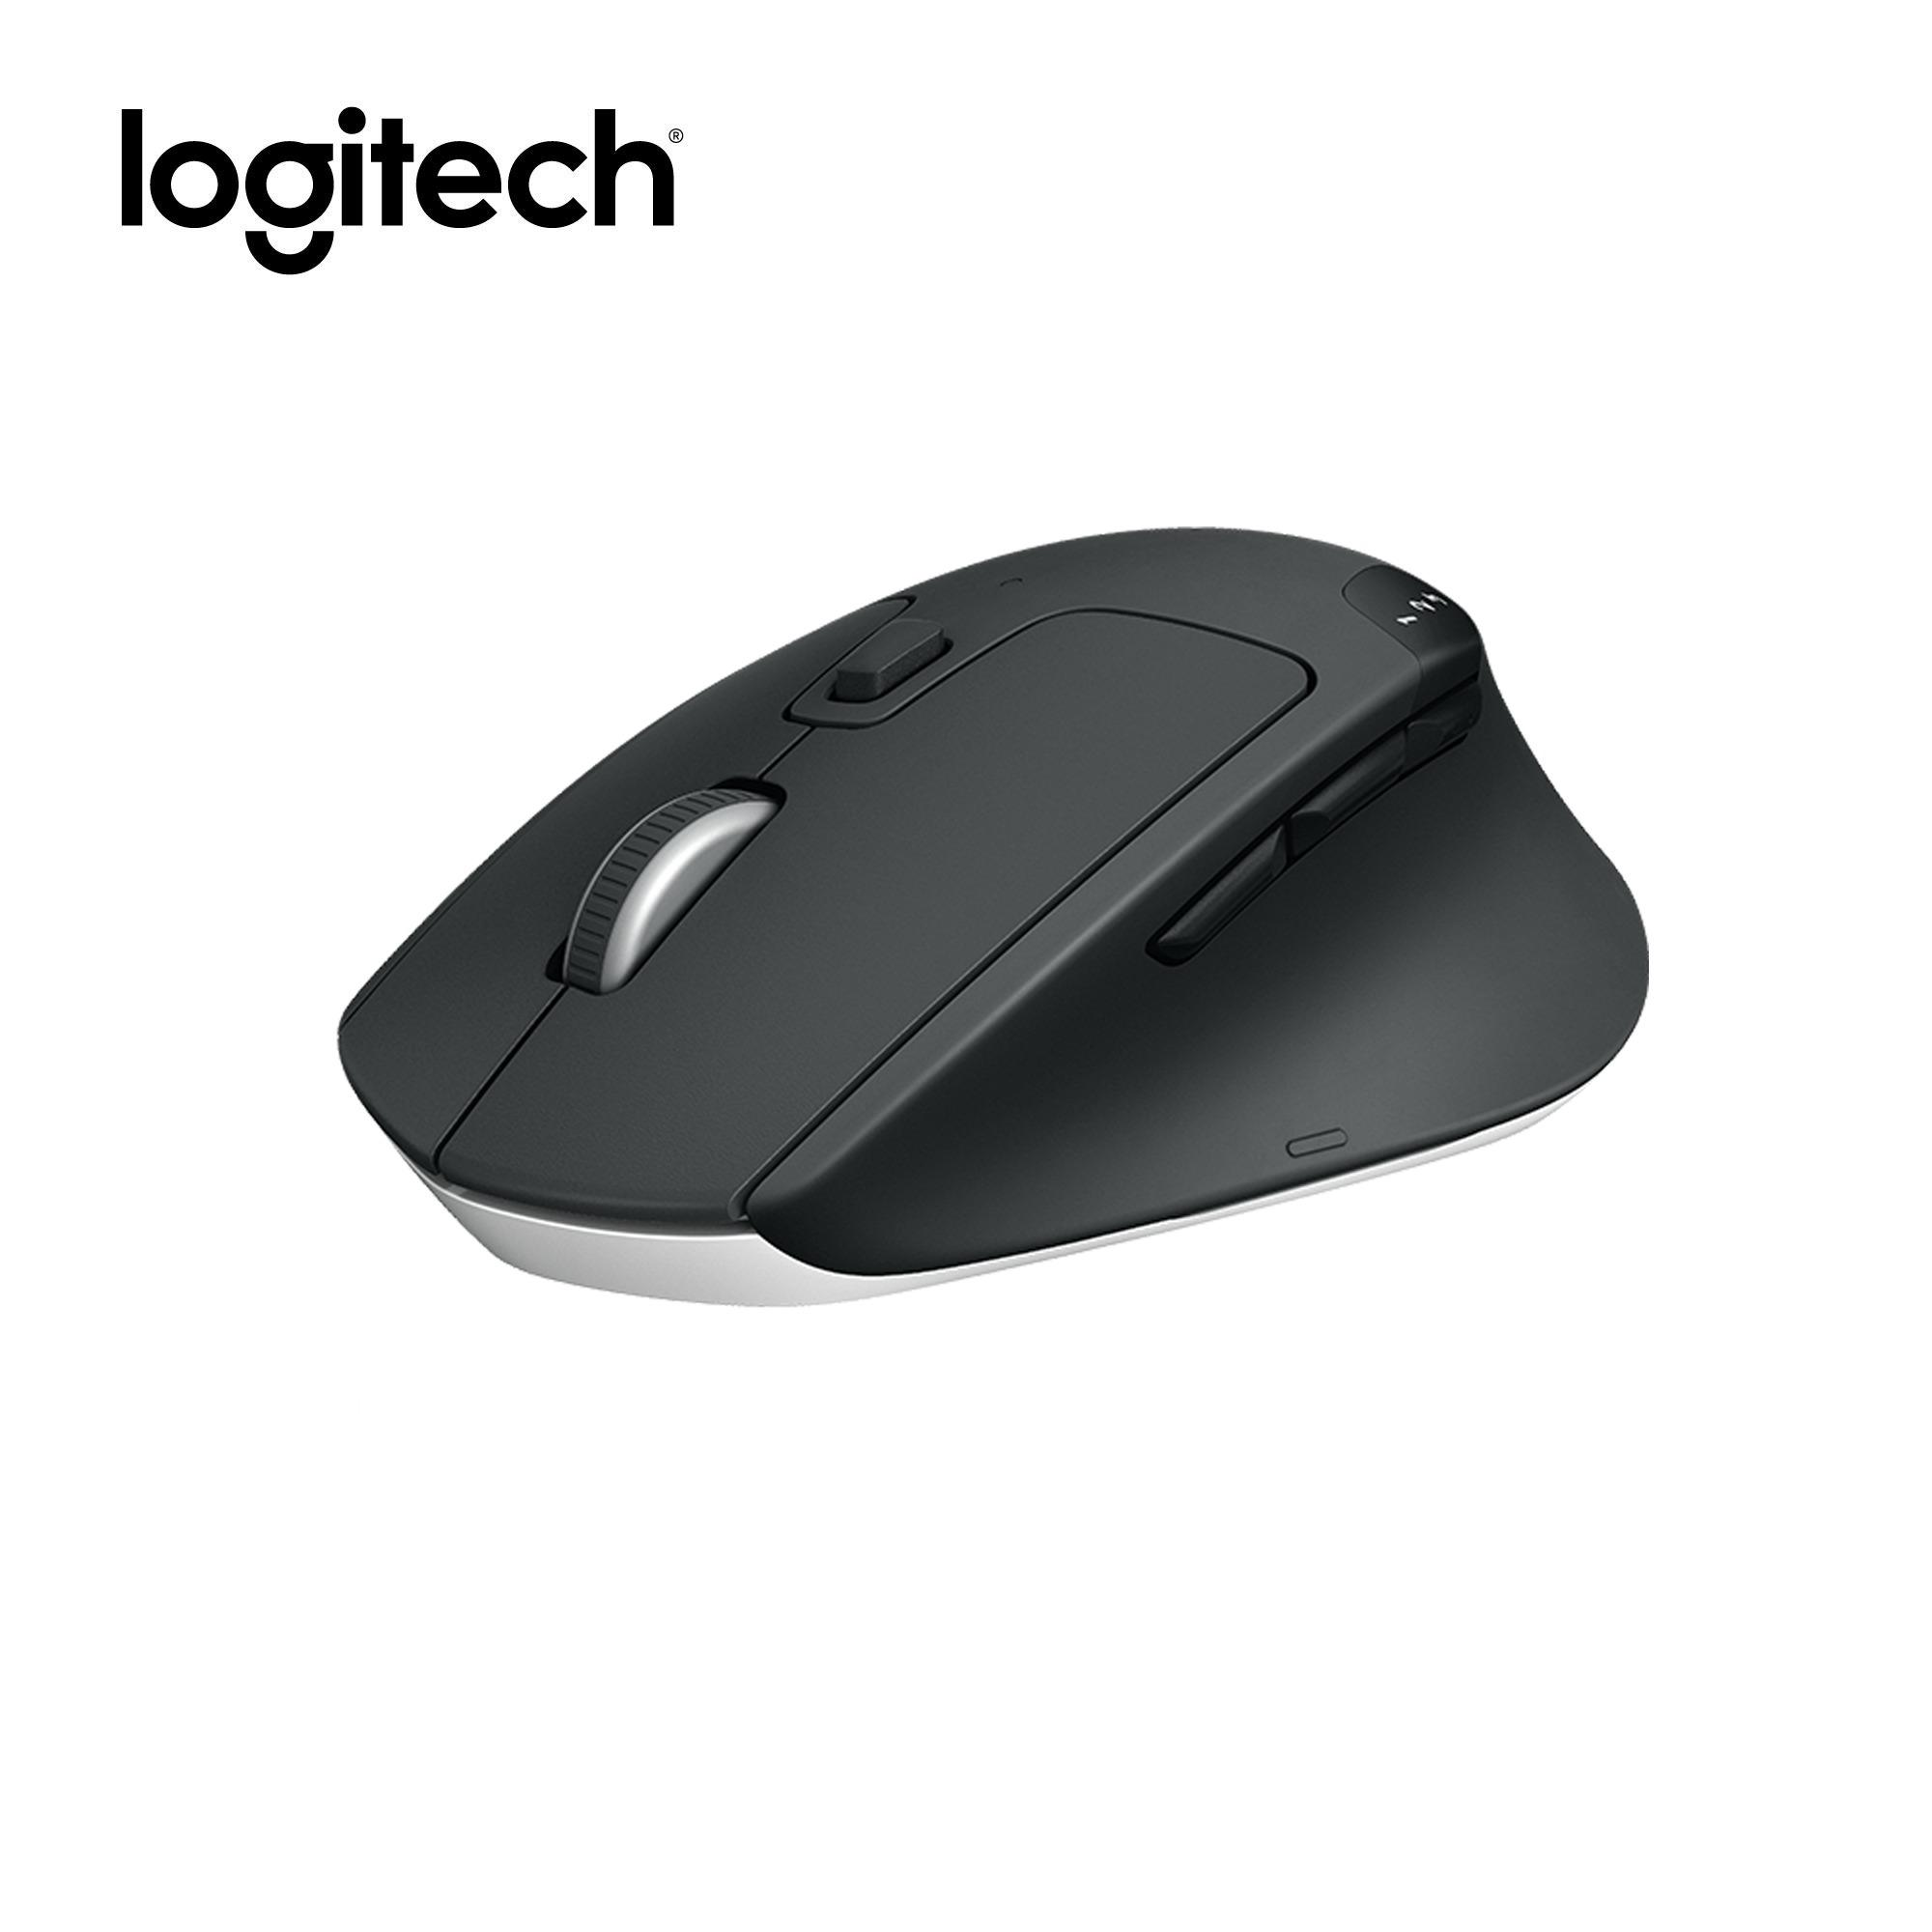 Logitech M720 Triathlon Multi-device Wireless Optical Mouse, Pair your  mouse with 3 computers, Hyper fast Scrolling, Bluetooth Smart and 2 4GHz